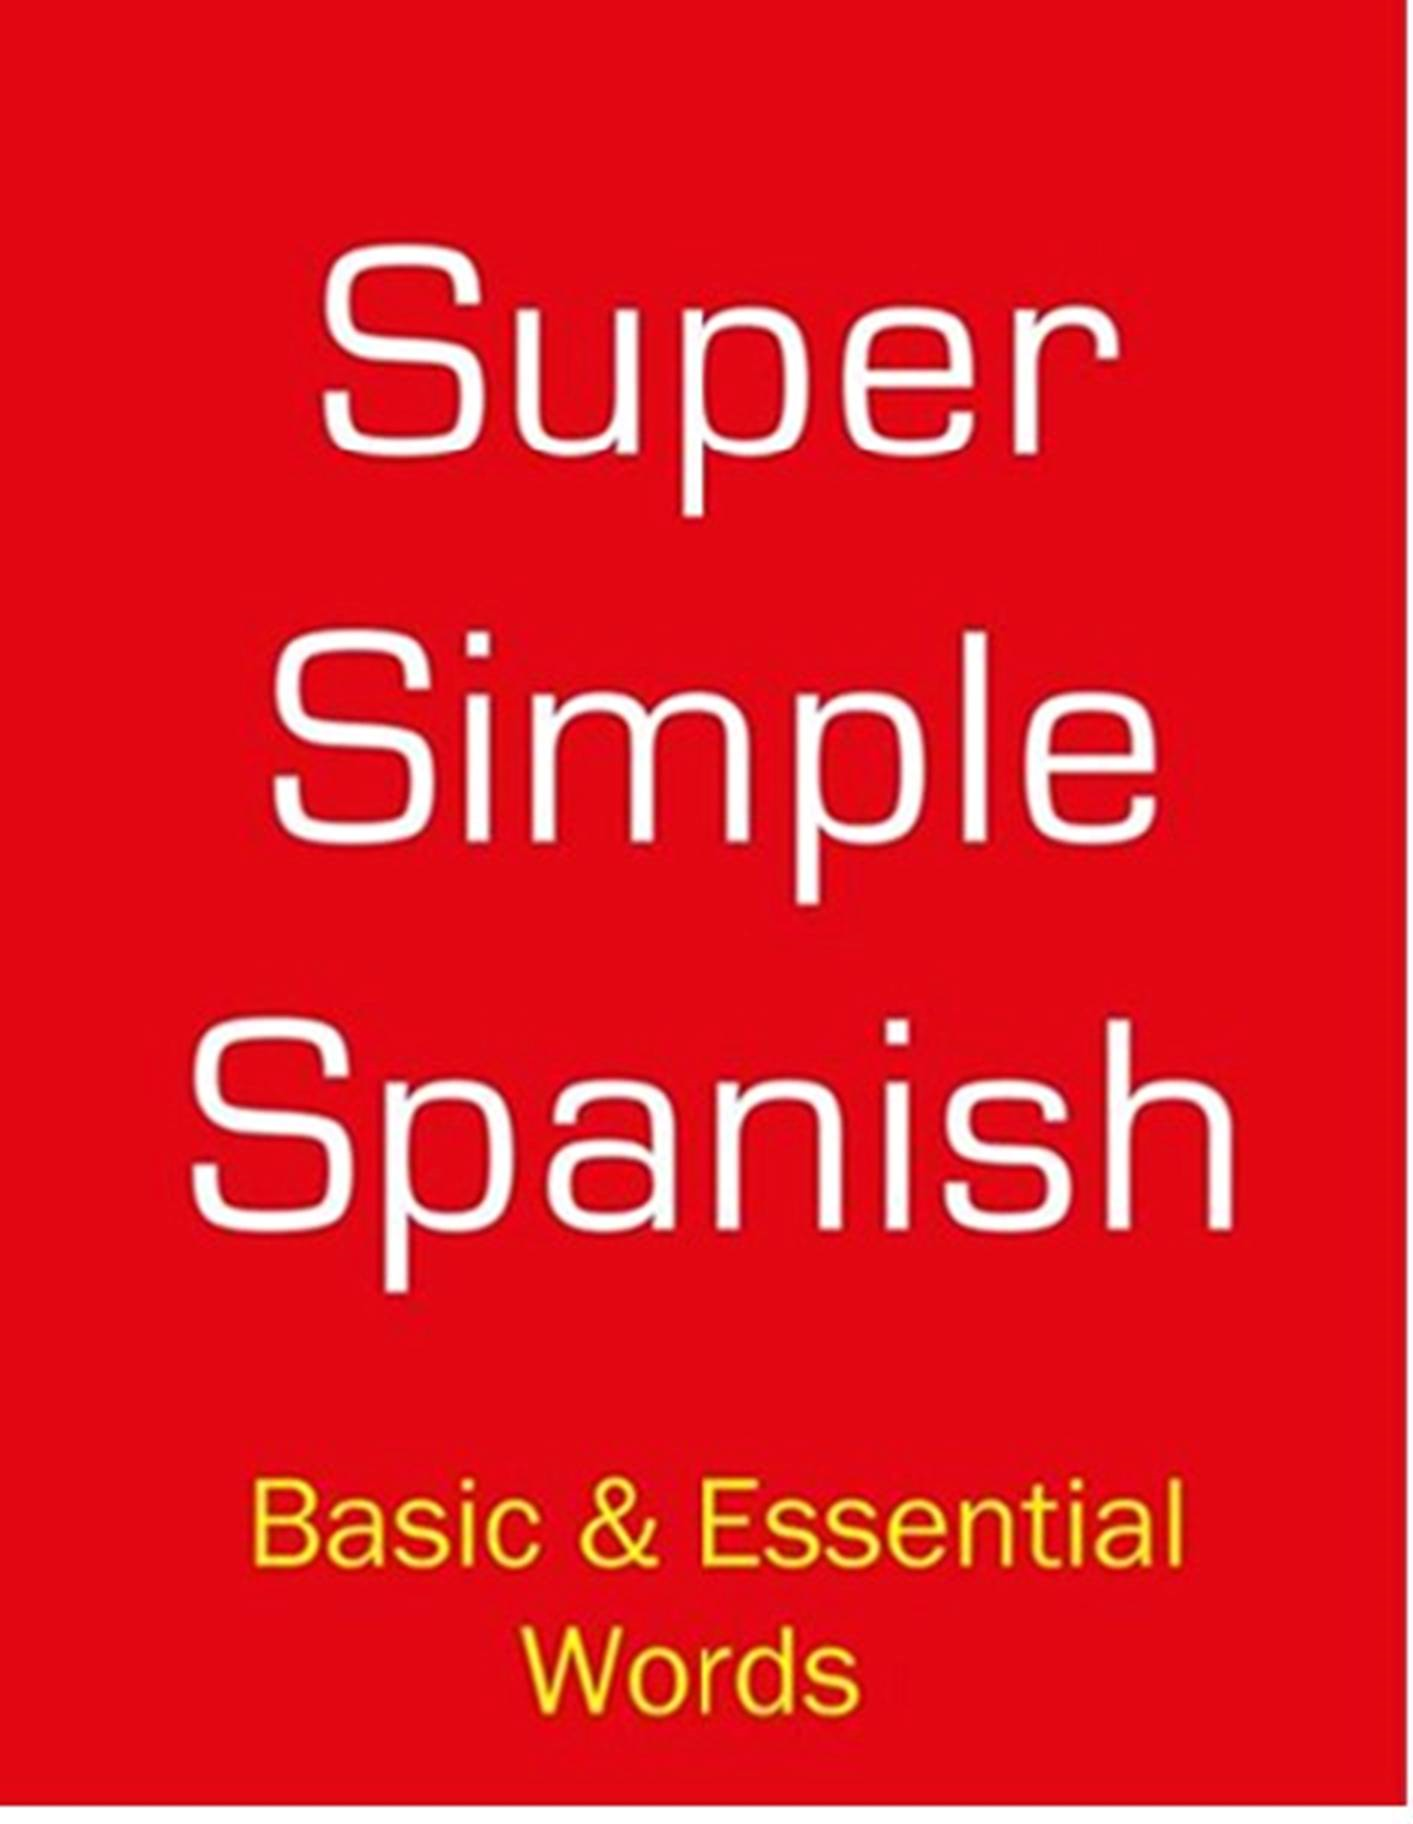 SUPER SIMPLE SPANISH